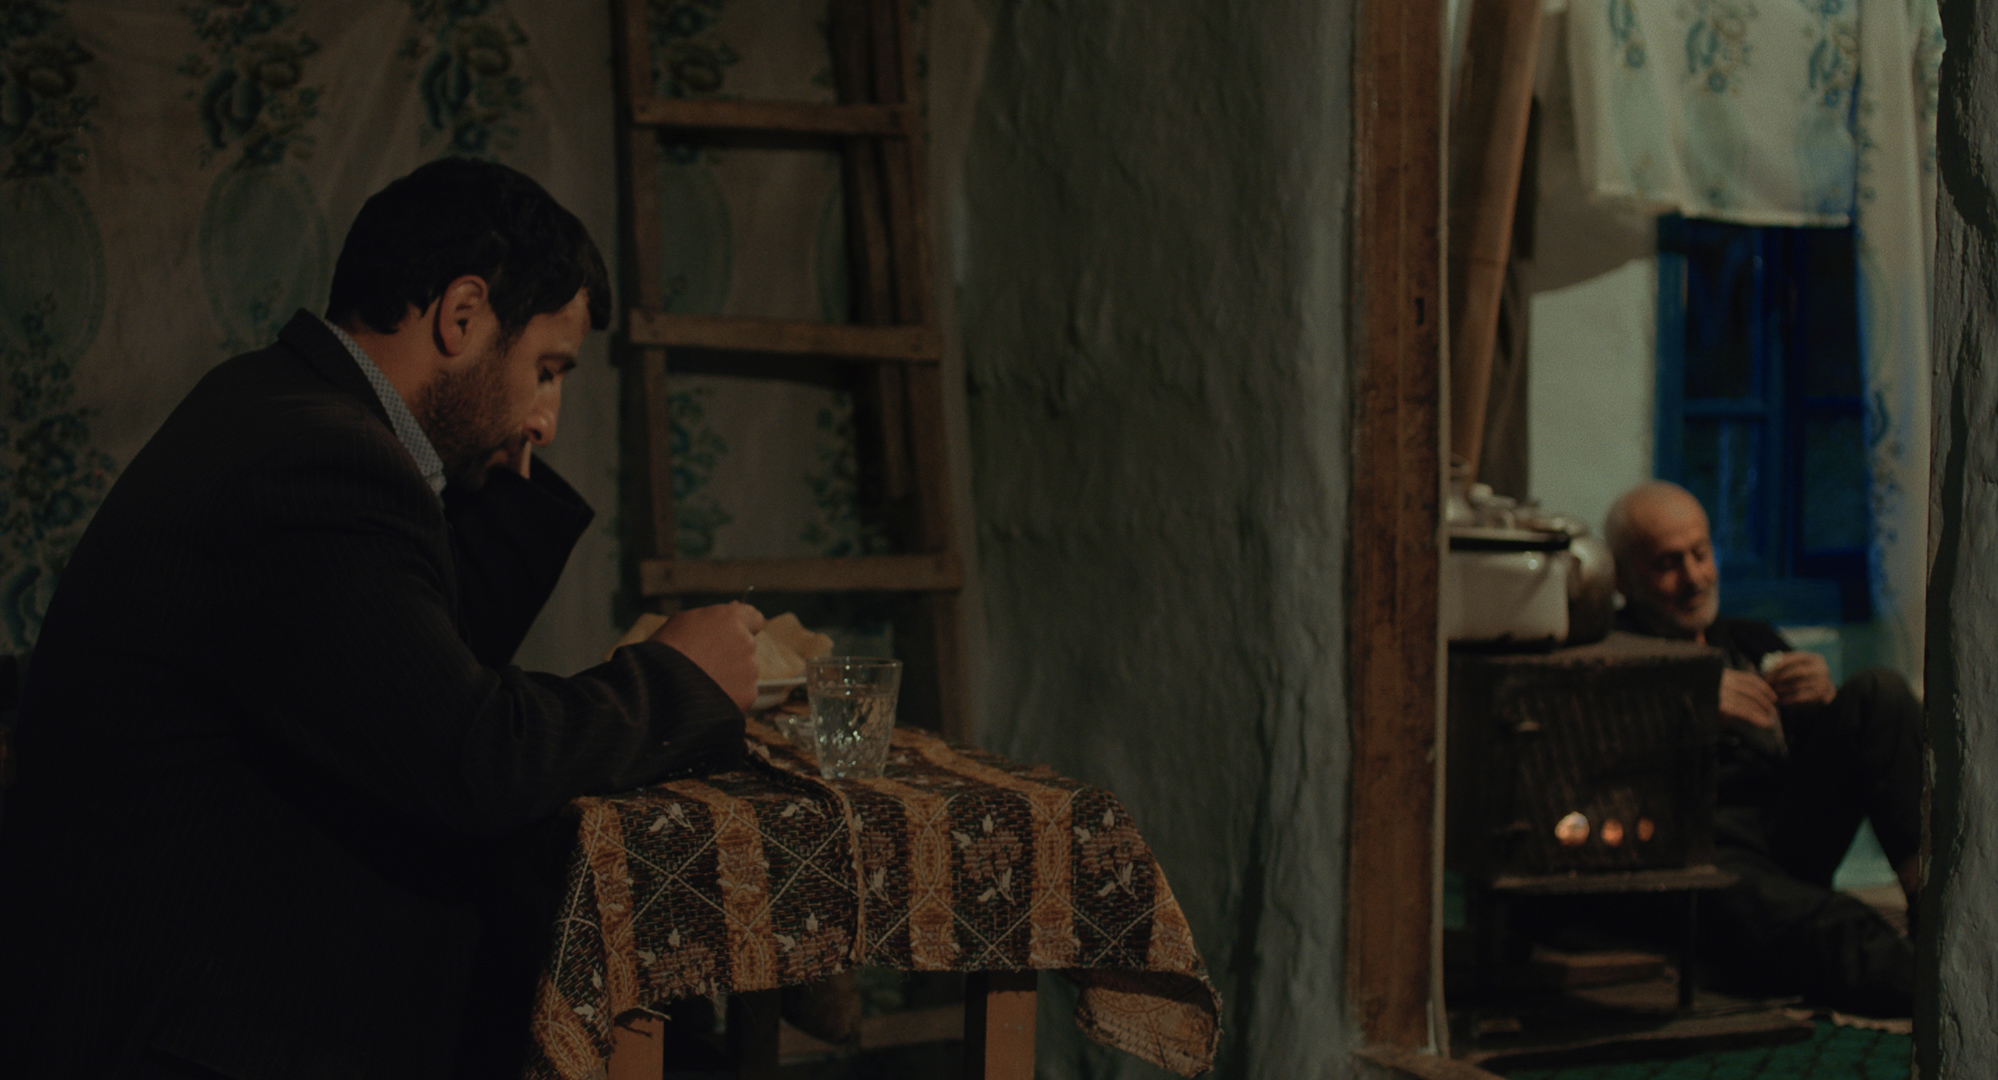 Film still from 'The Chairs'